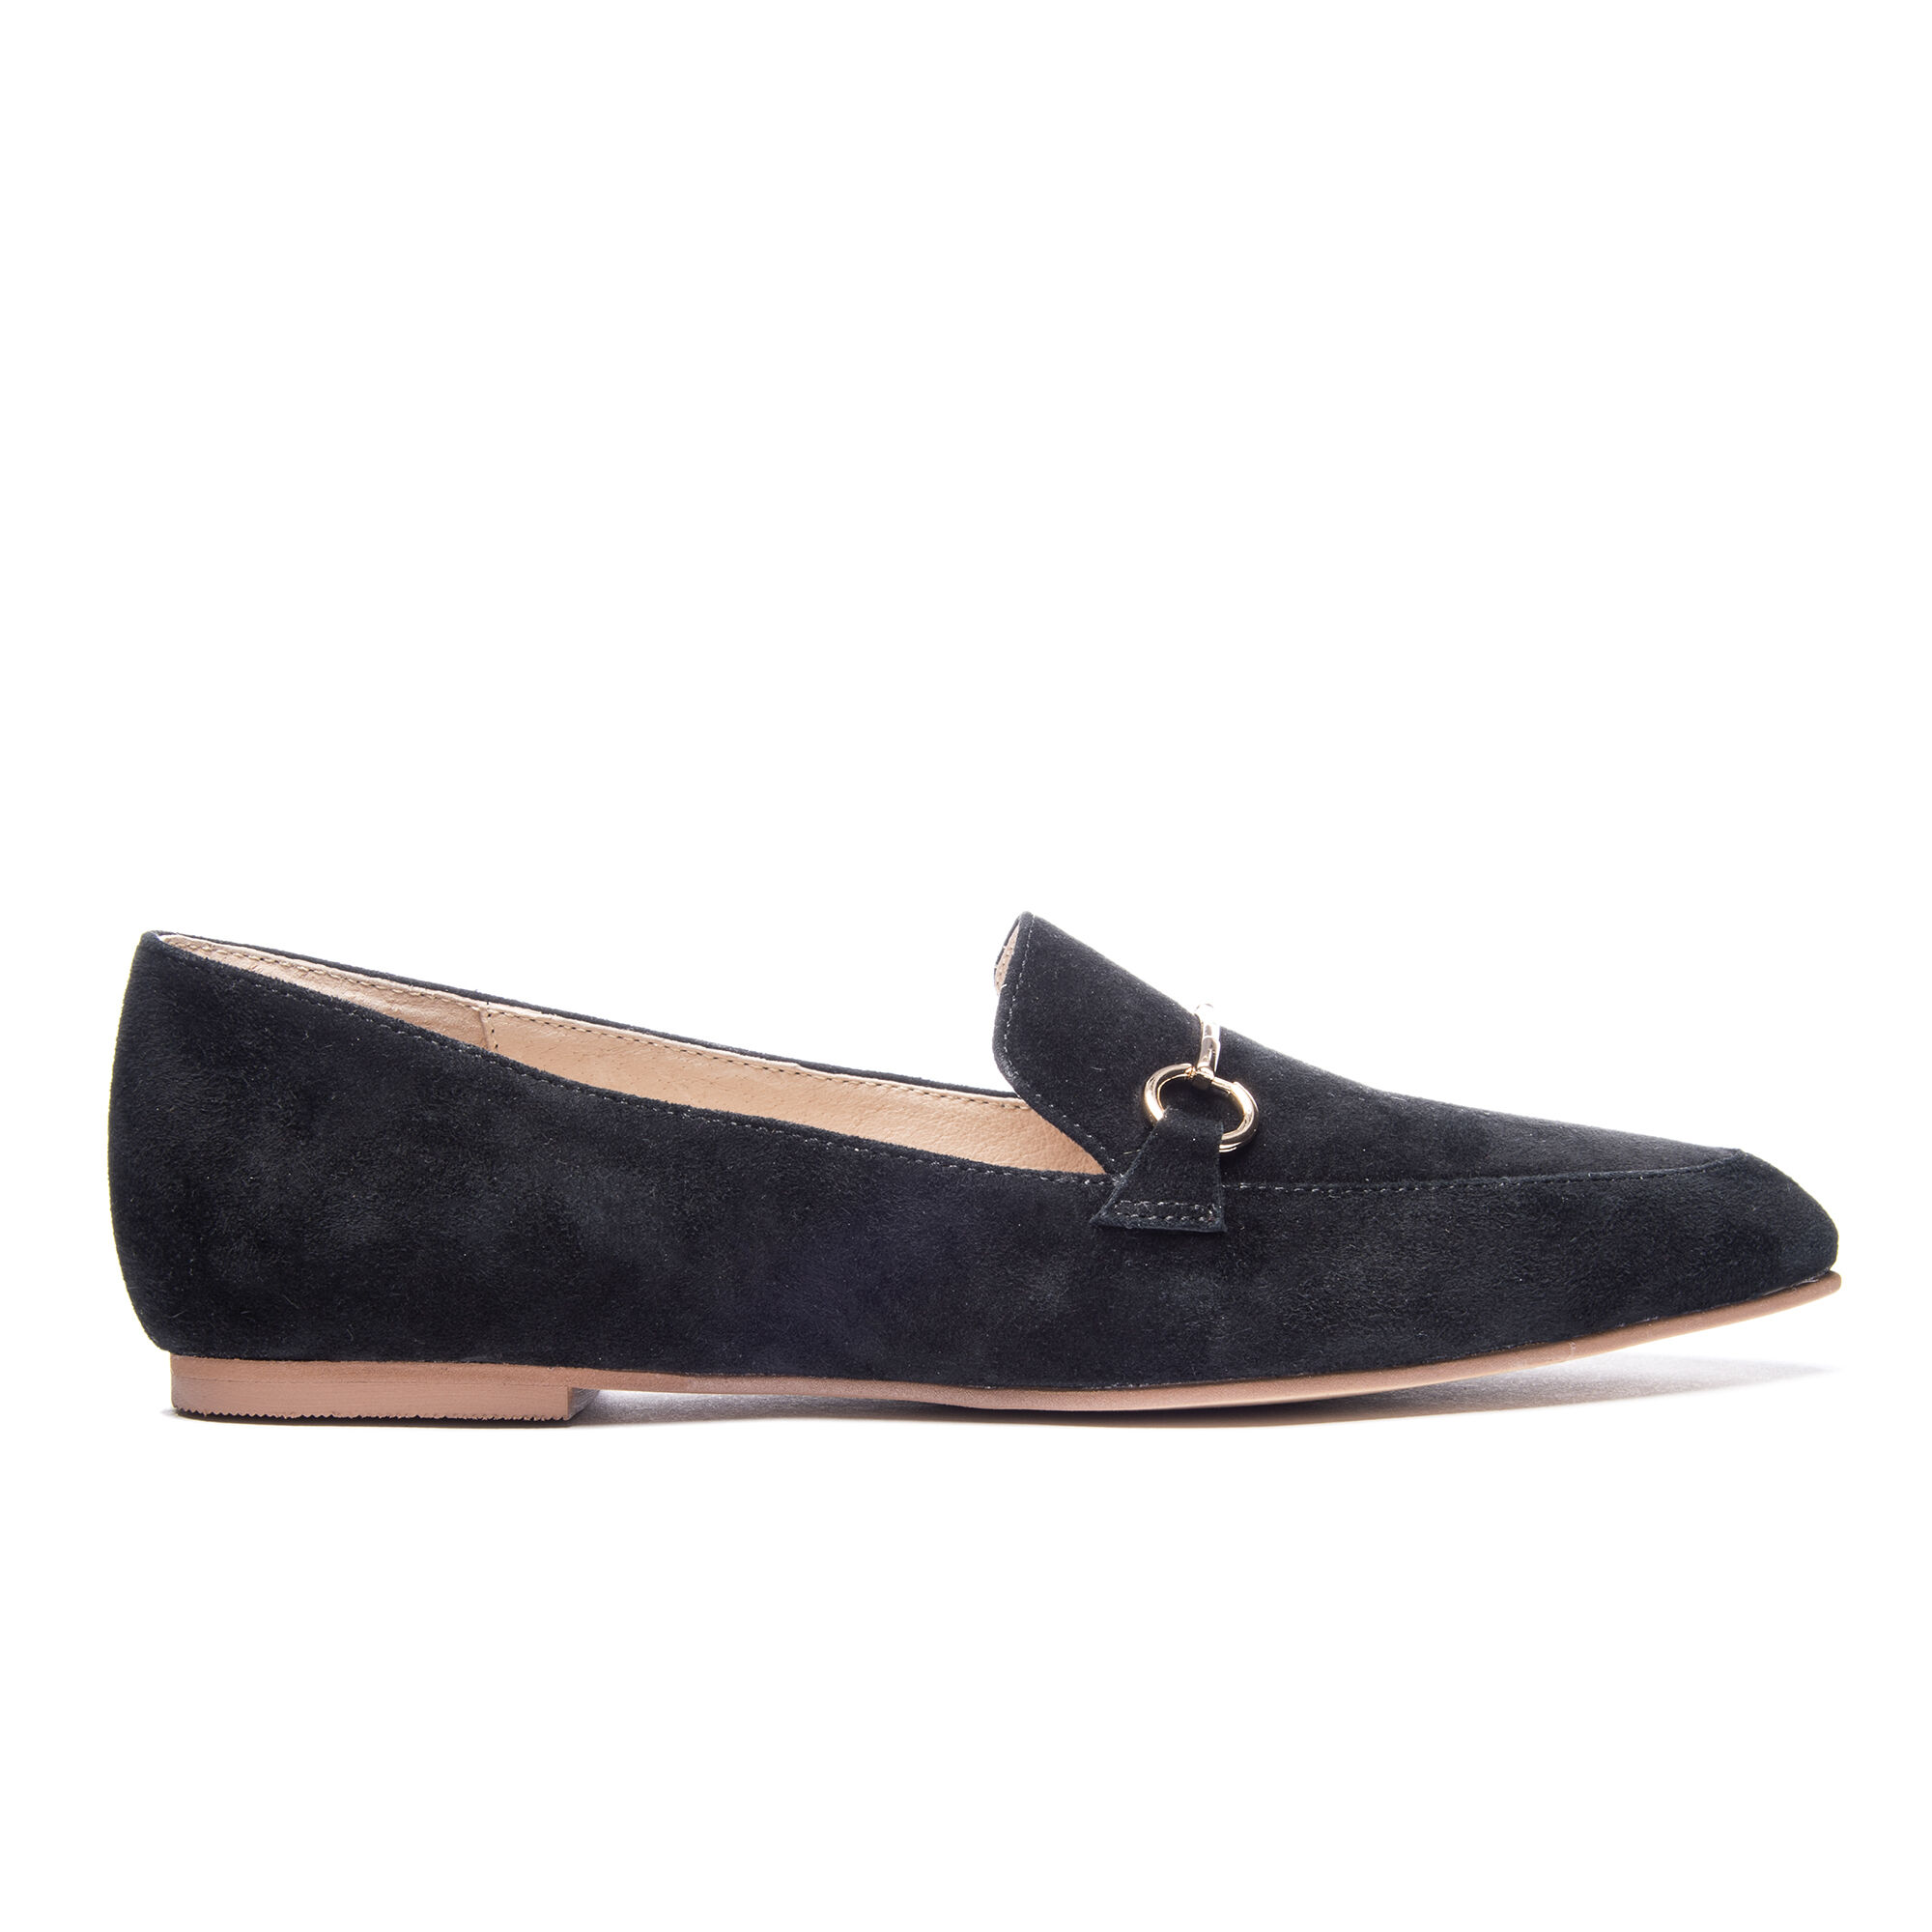 Cambrie Loafers Women S Suede Loafers Kristin Cavallari